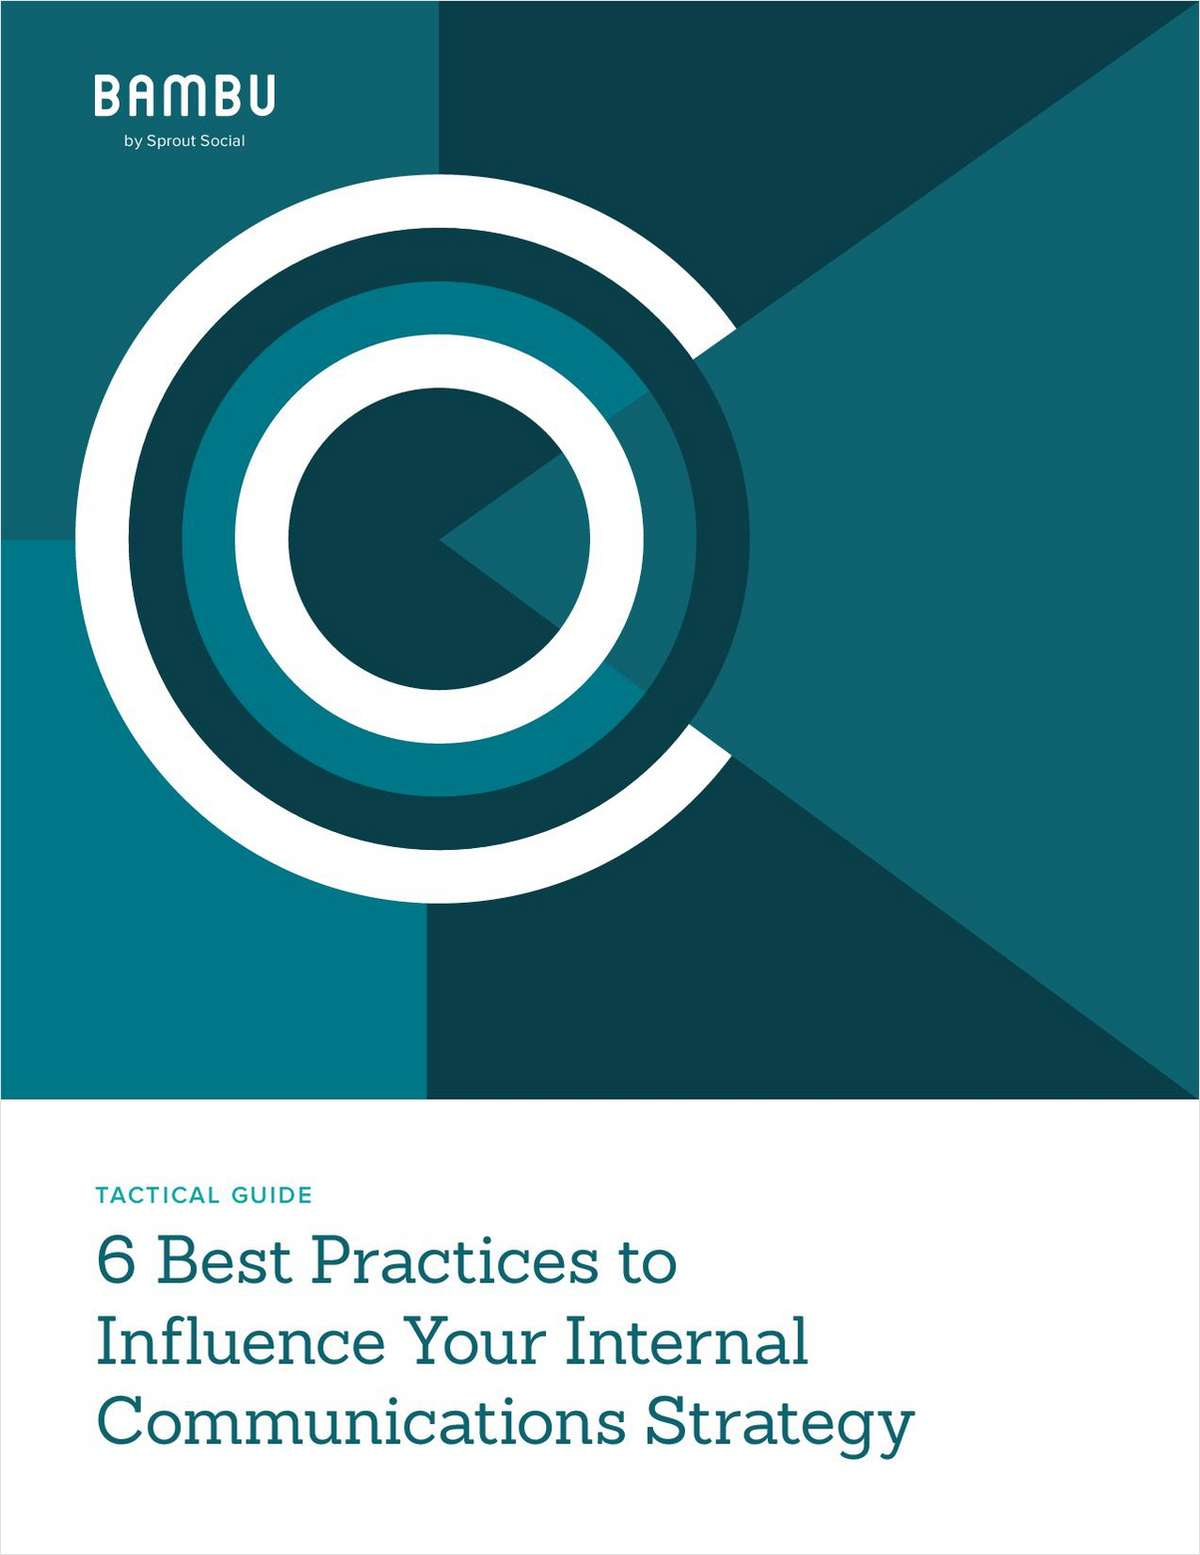 6 Best Practices to Influence Your Internal Communications Strategy